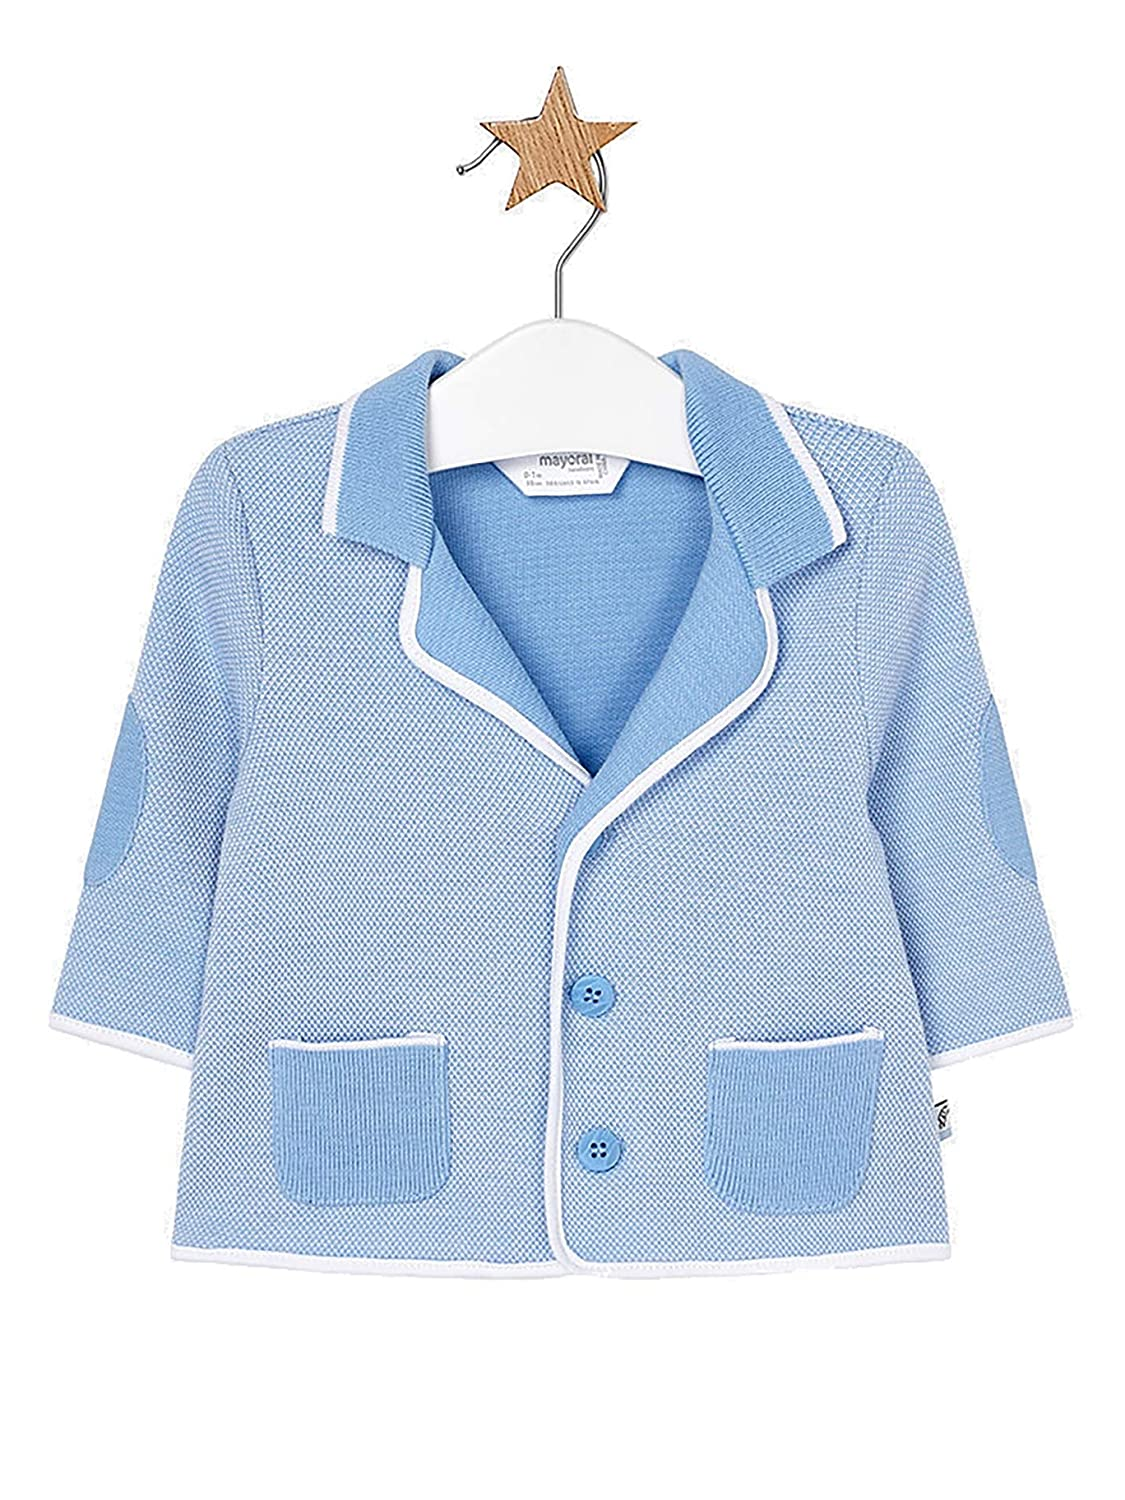 Sky Mayoral 1408 Jacket for Baby-Boys